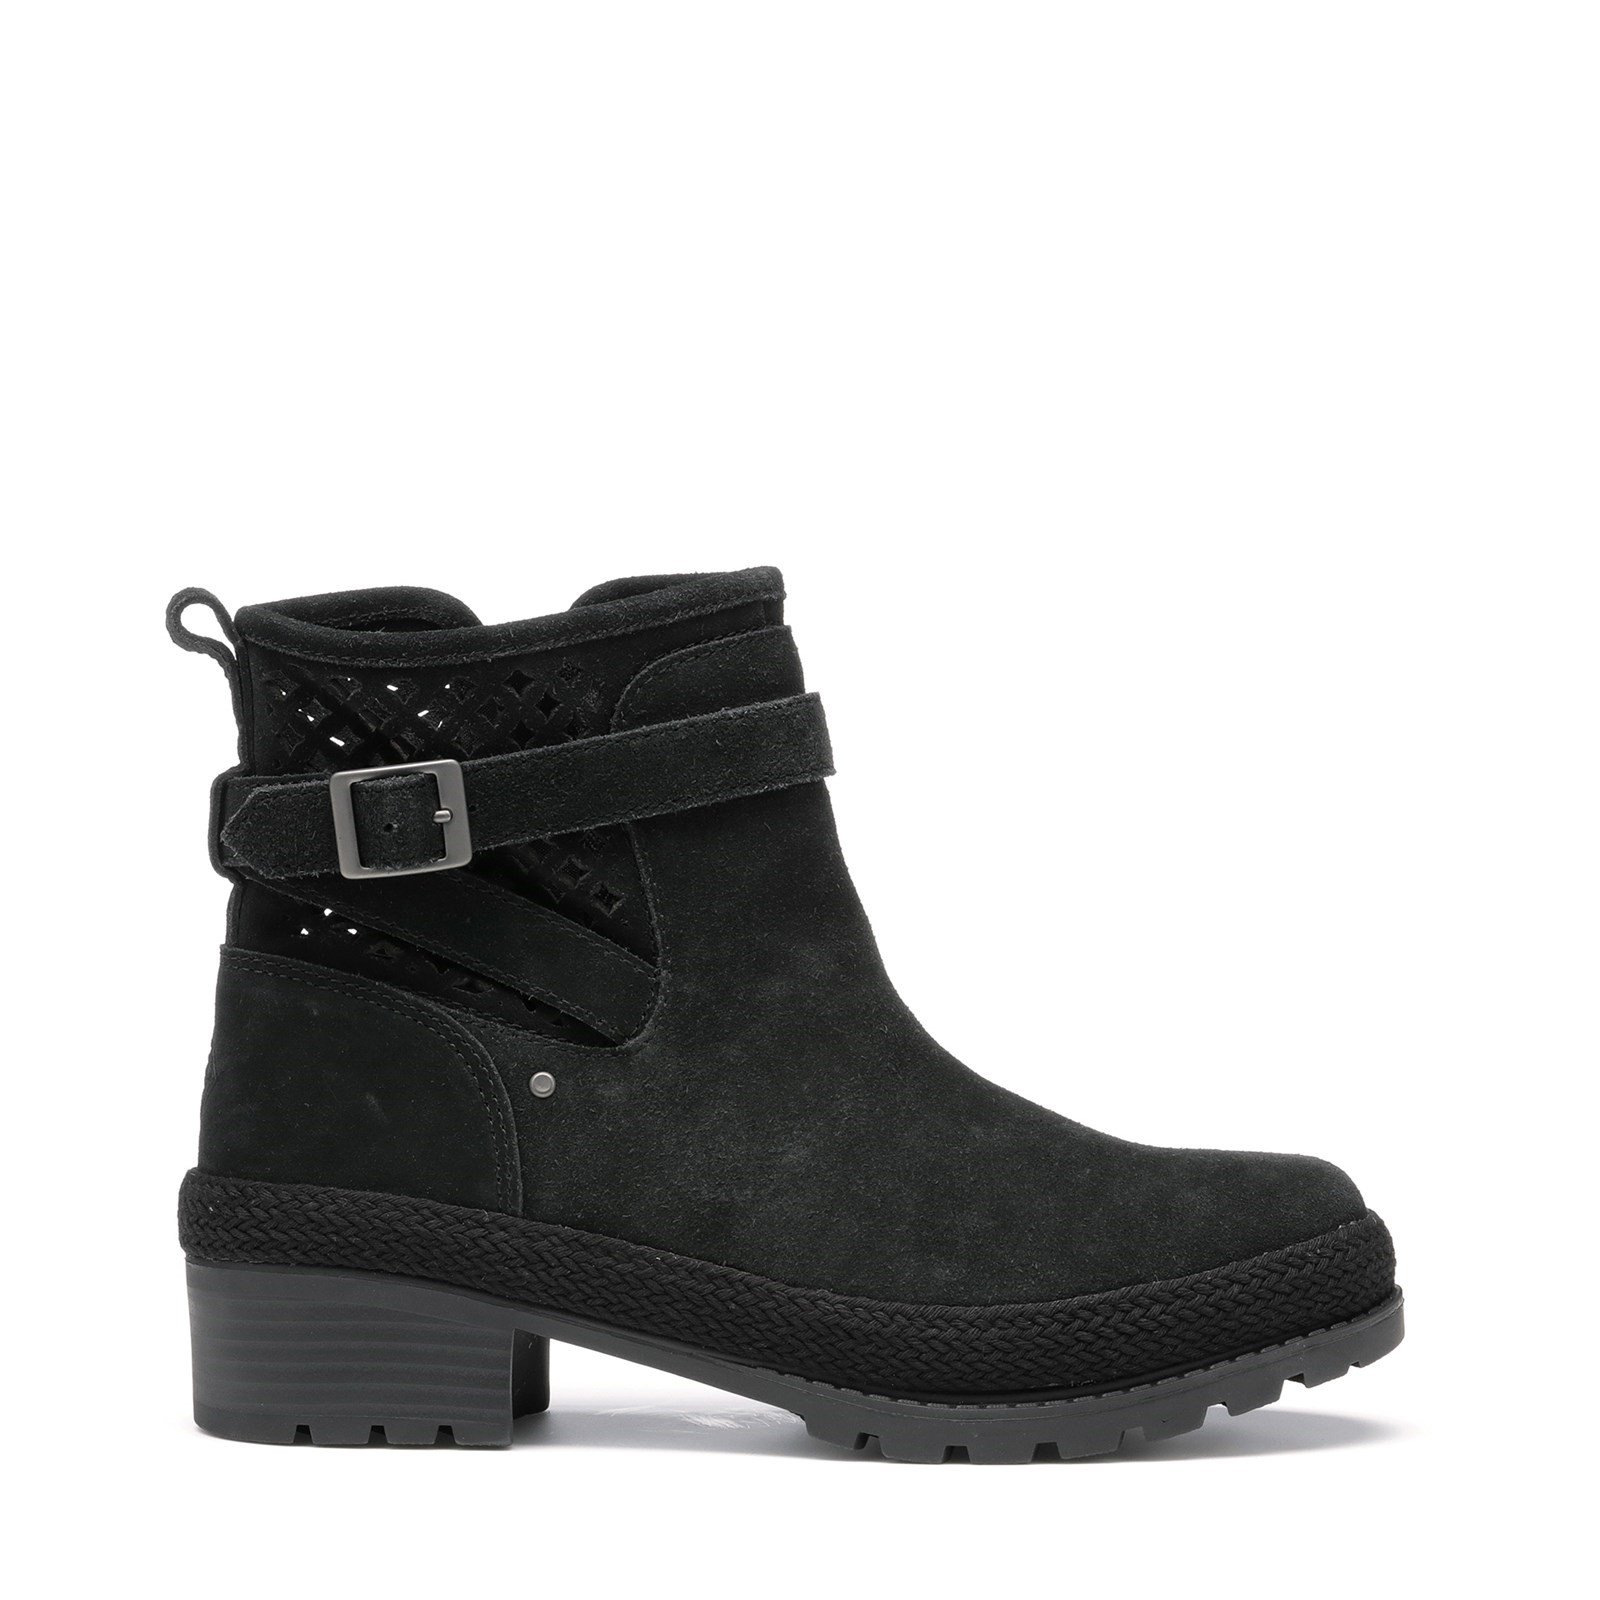 Muck Boots Women's Liberty Perforated Leather Boots Various Colours 31814 - Black 6.5